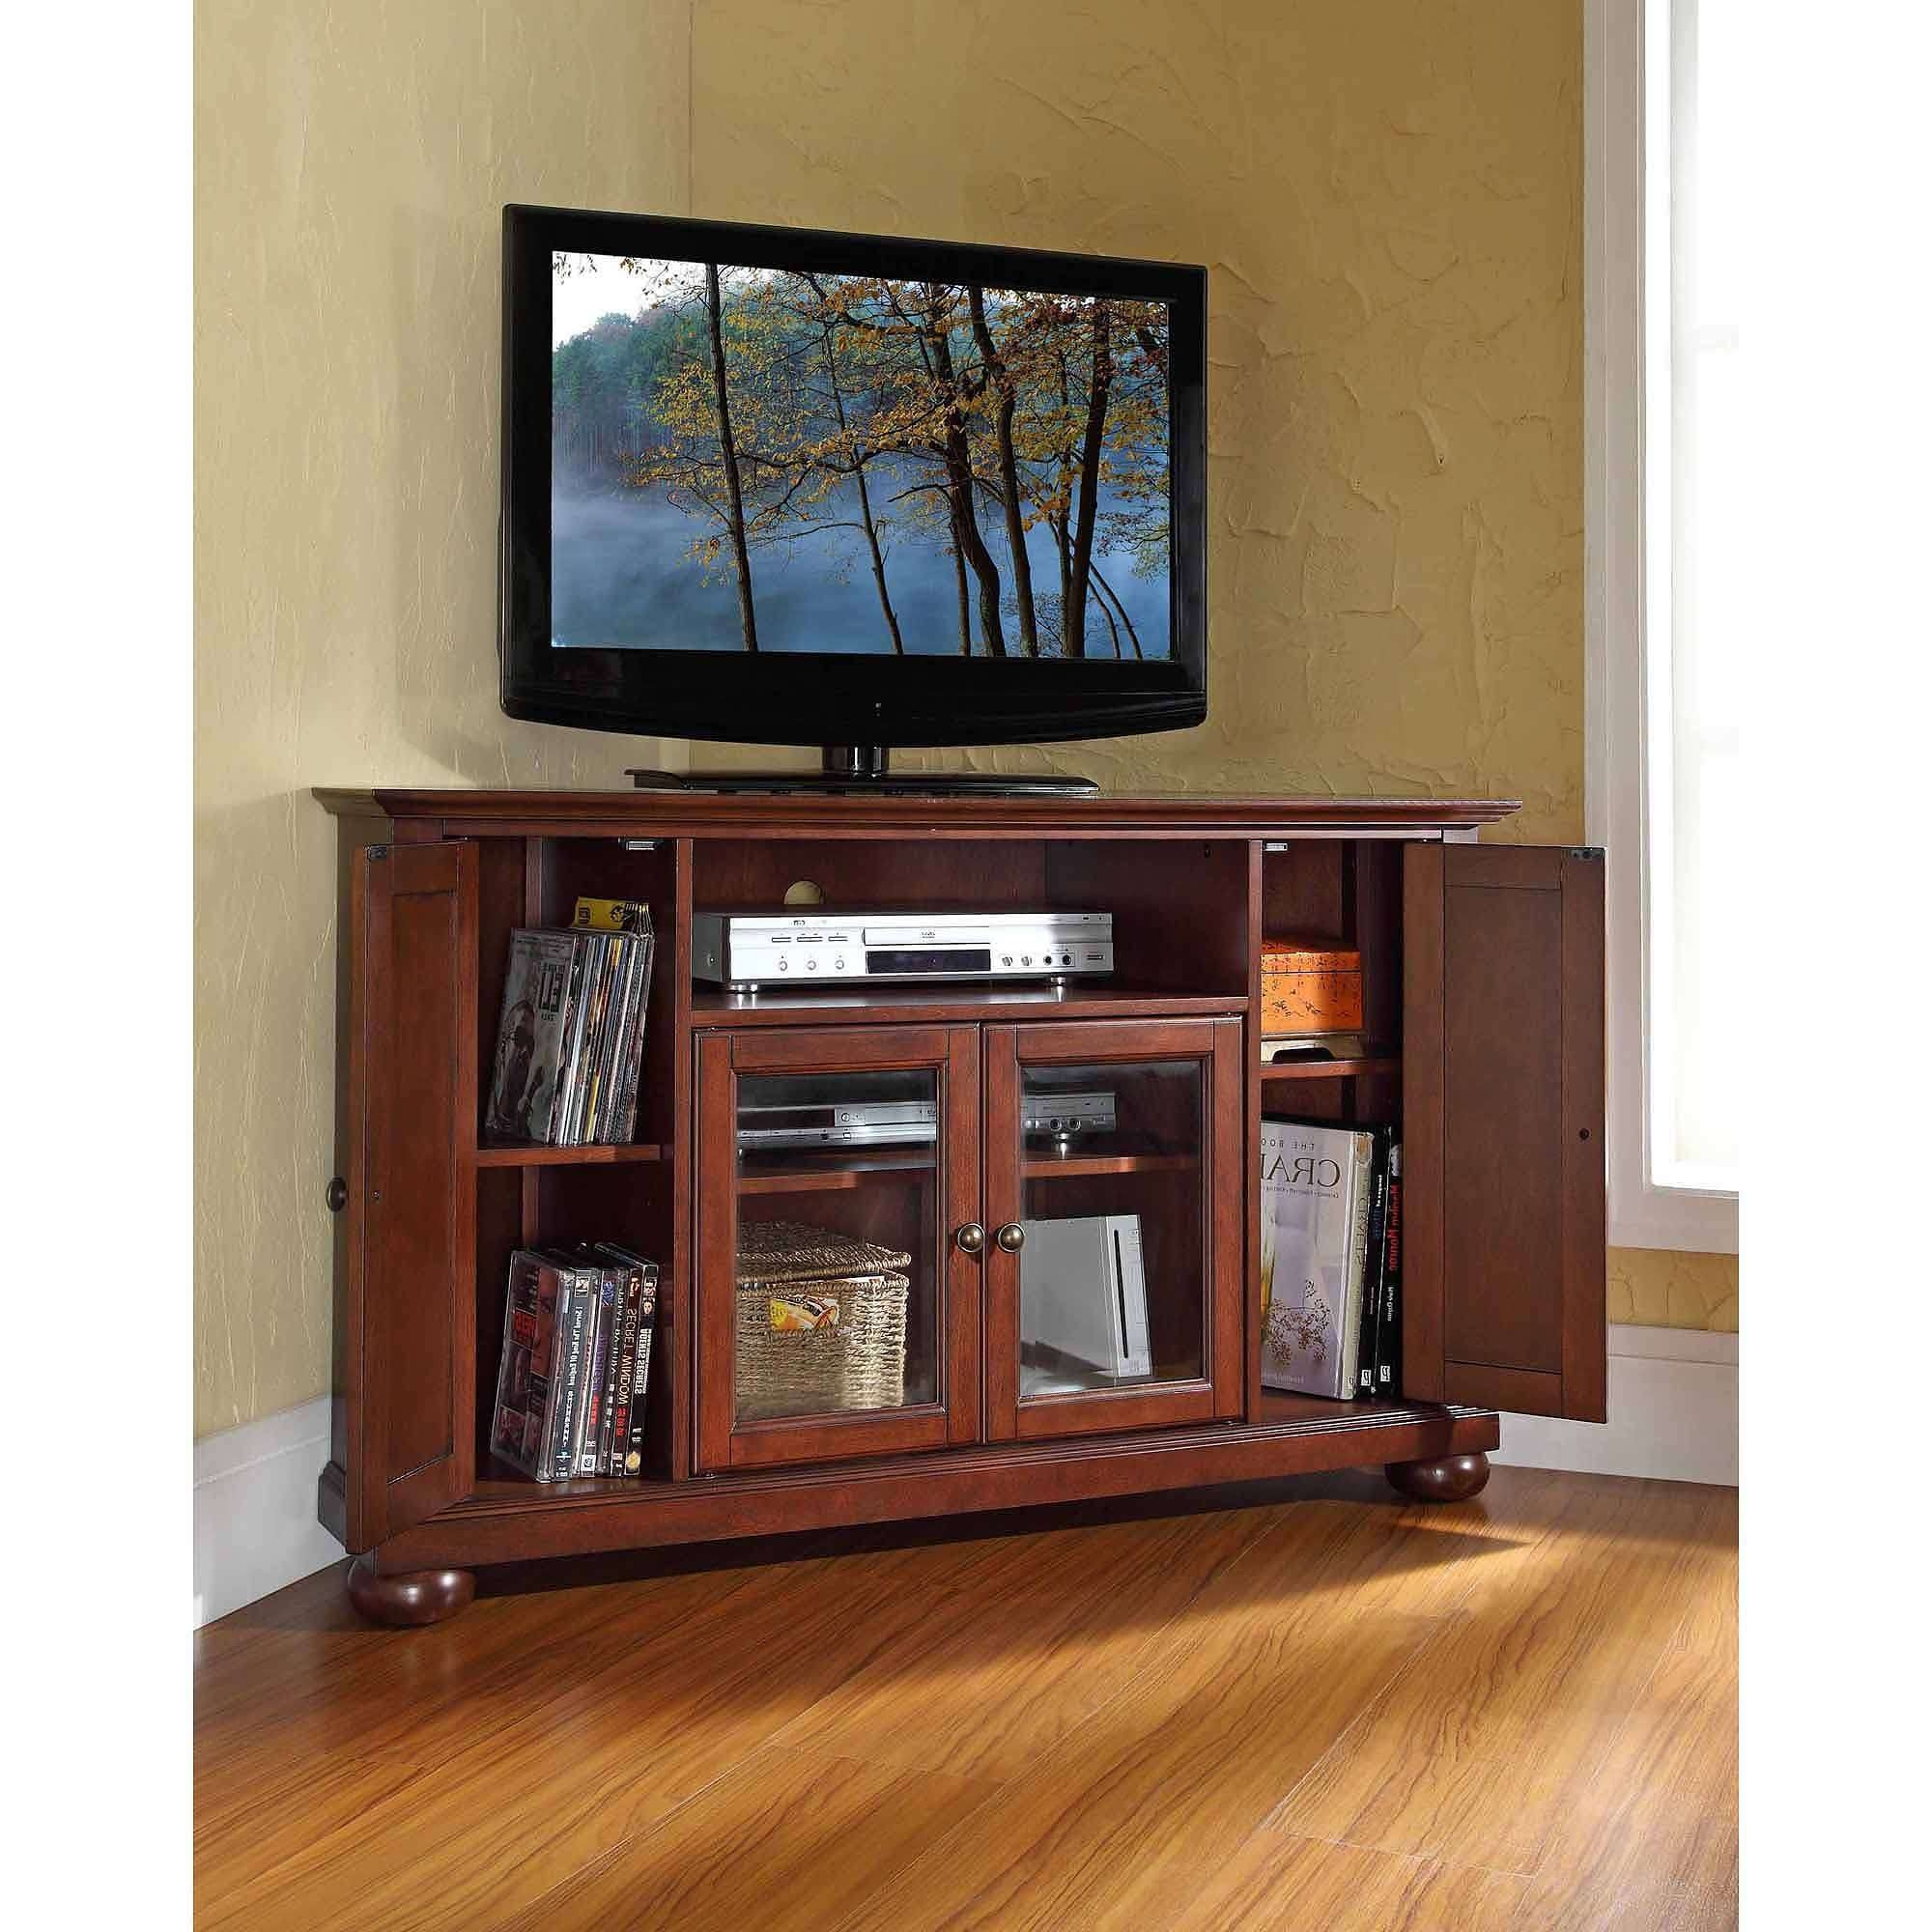 Tv Stand : 32 Unusual 55 Inch Corner Tv Stand With Mount Images With Corner 55 Inch Tv Stands (View 3 of 15)